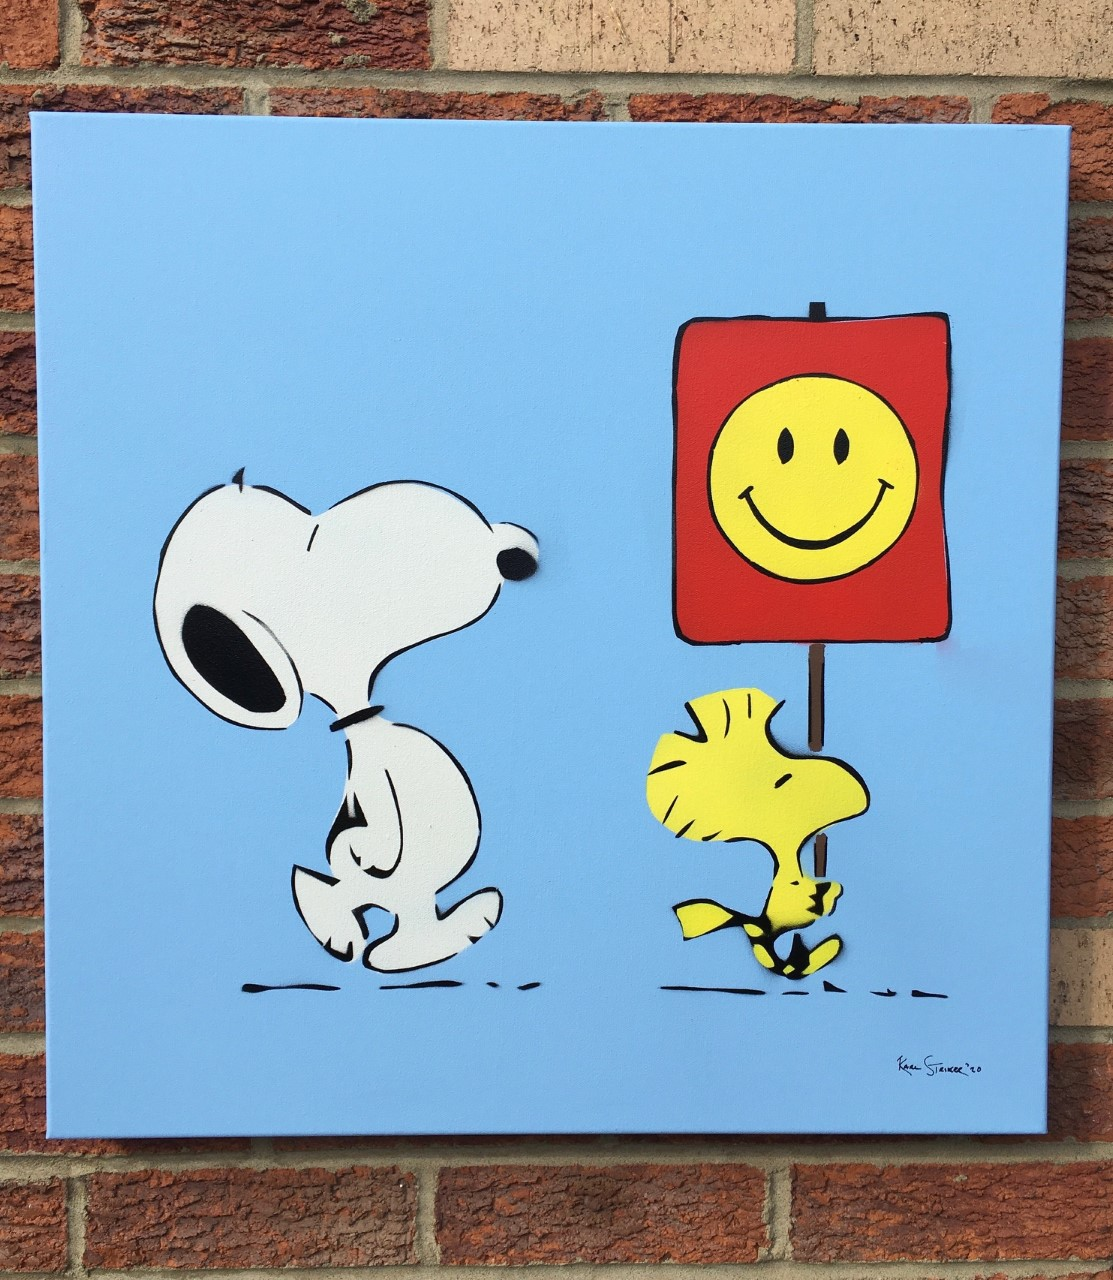 Snoopy Smiley Face-Bl... by  Karl Striker - Masterpiece Online